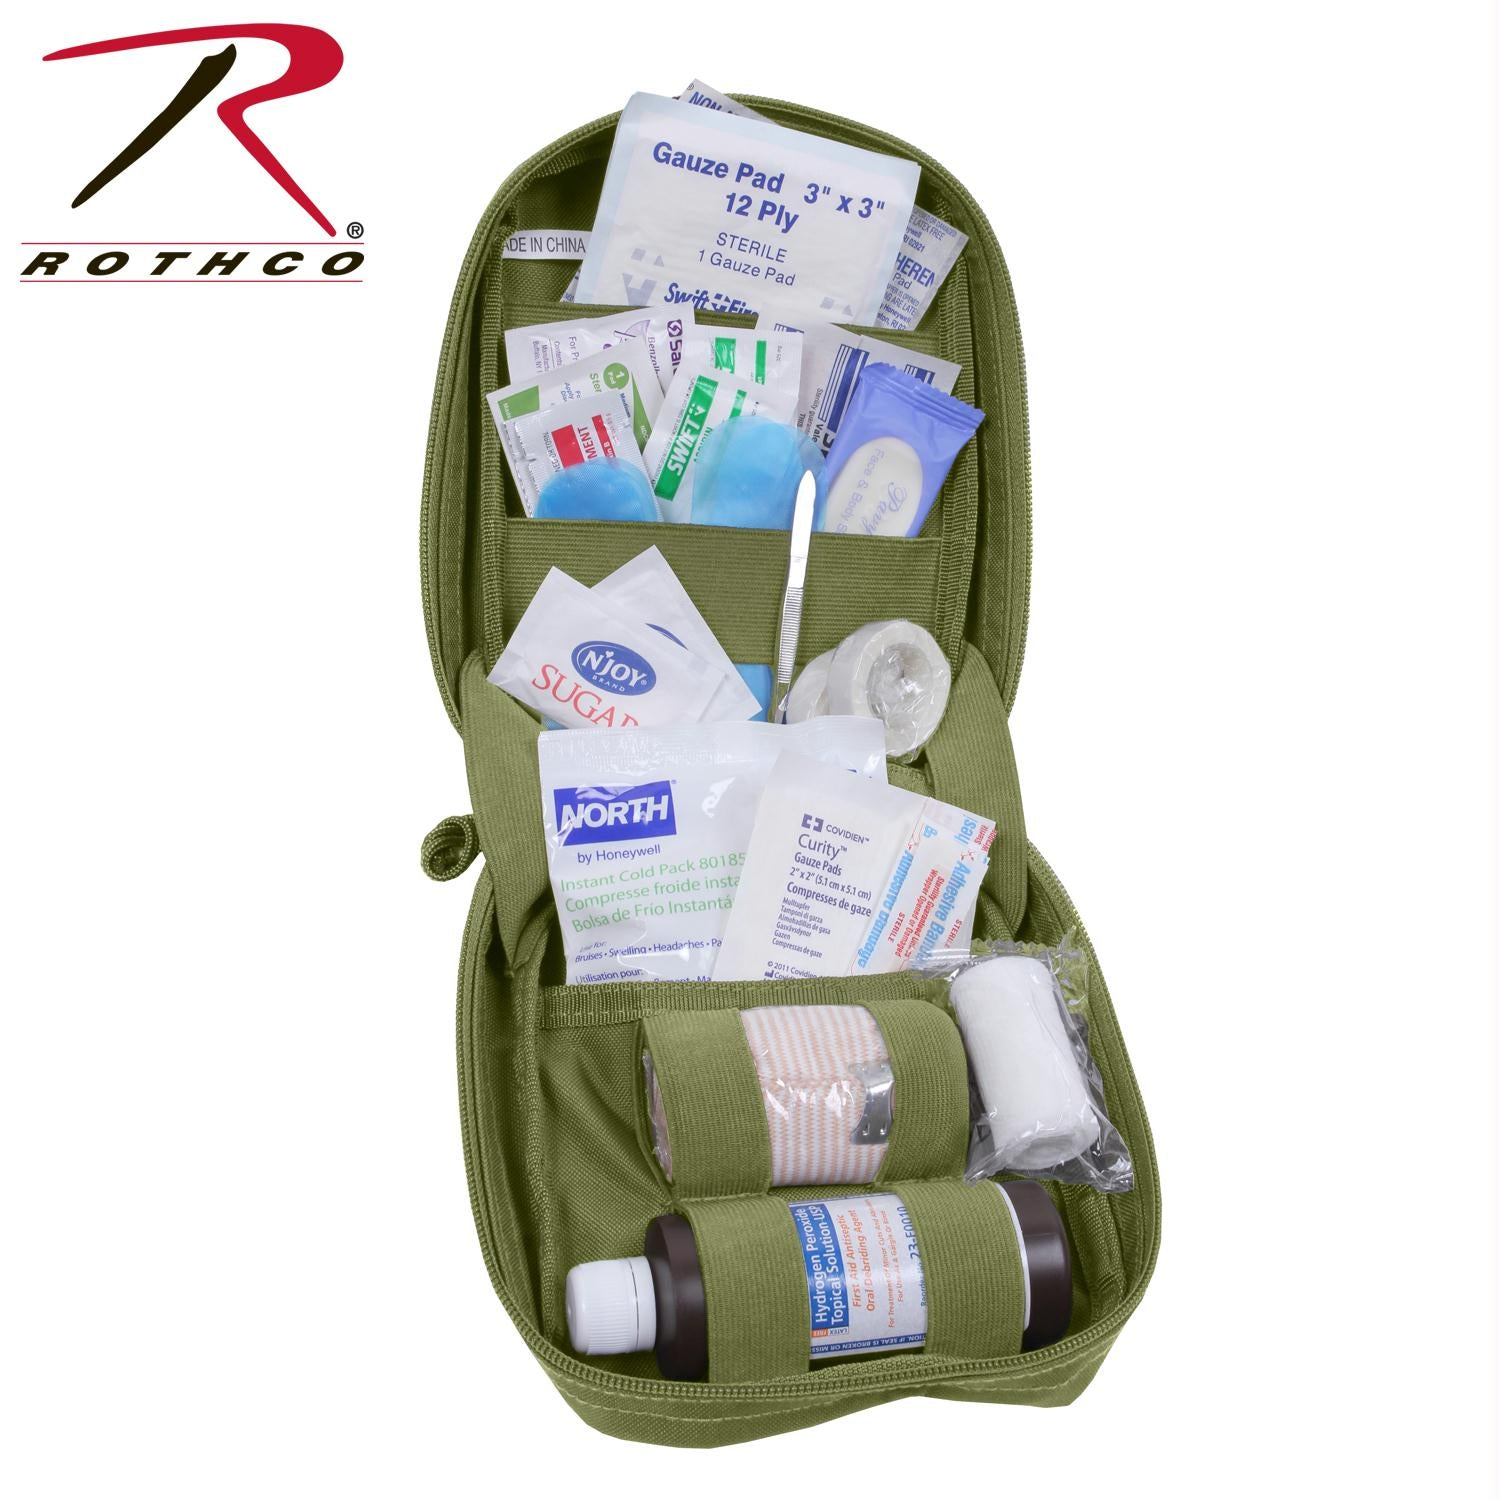 Rothco MOLLE Tactical First Aid Kit - Olive Drab